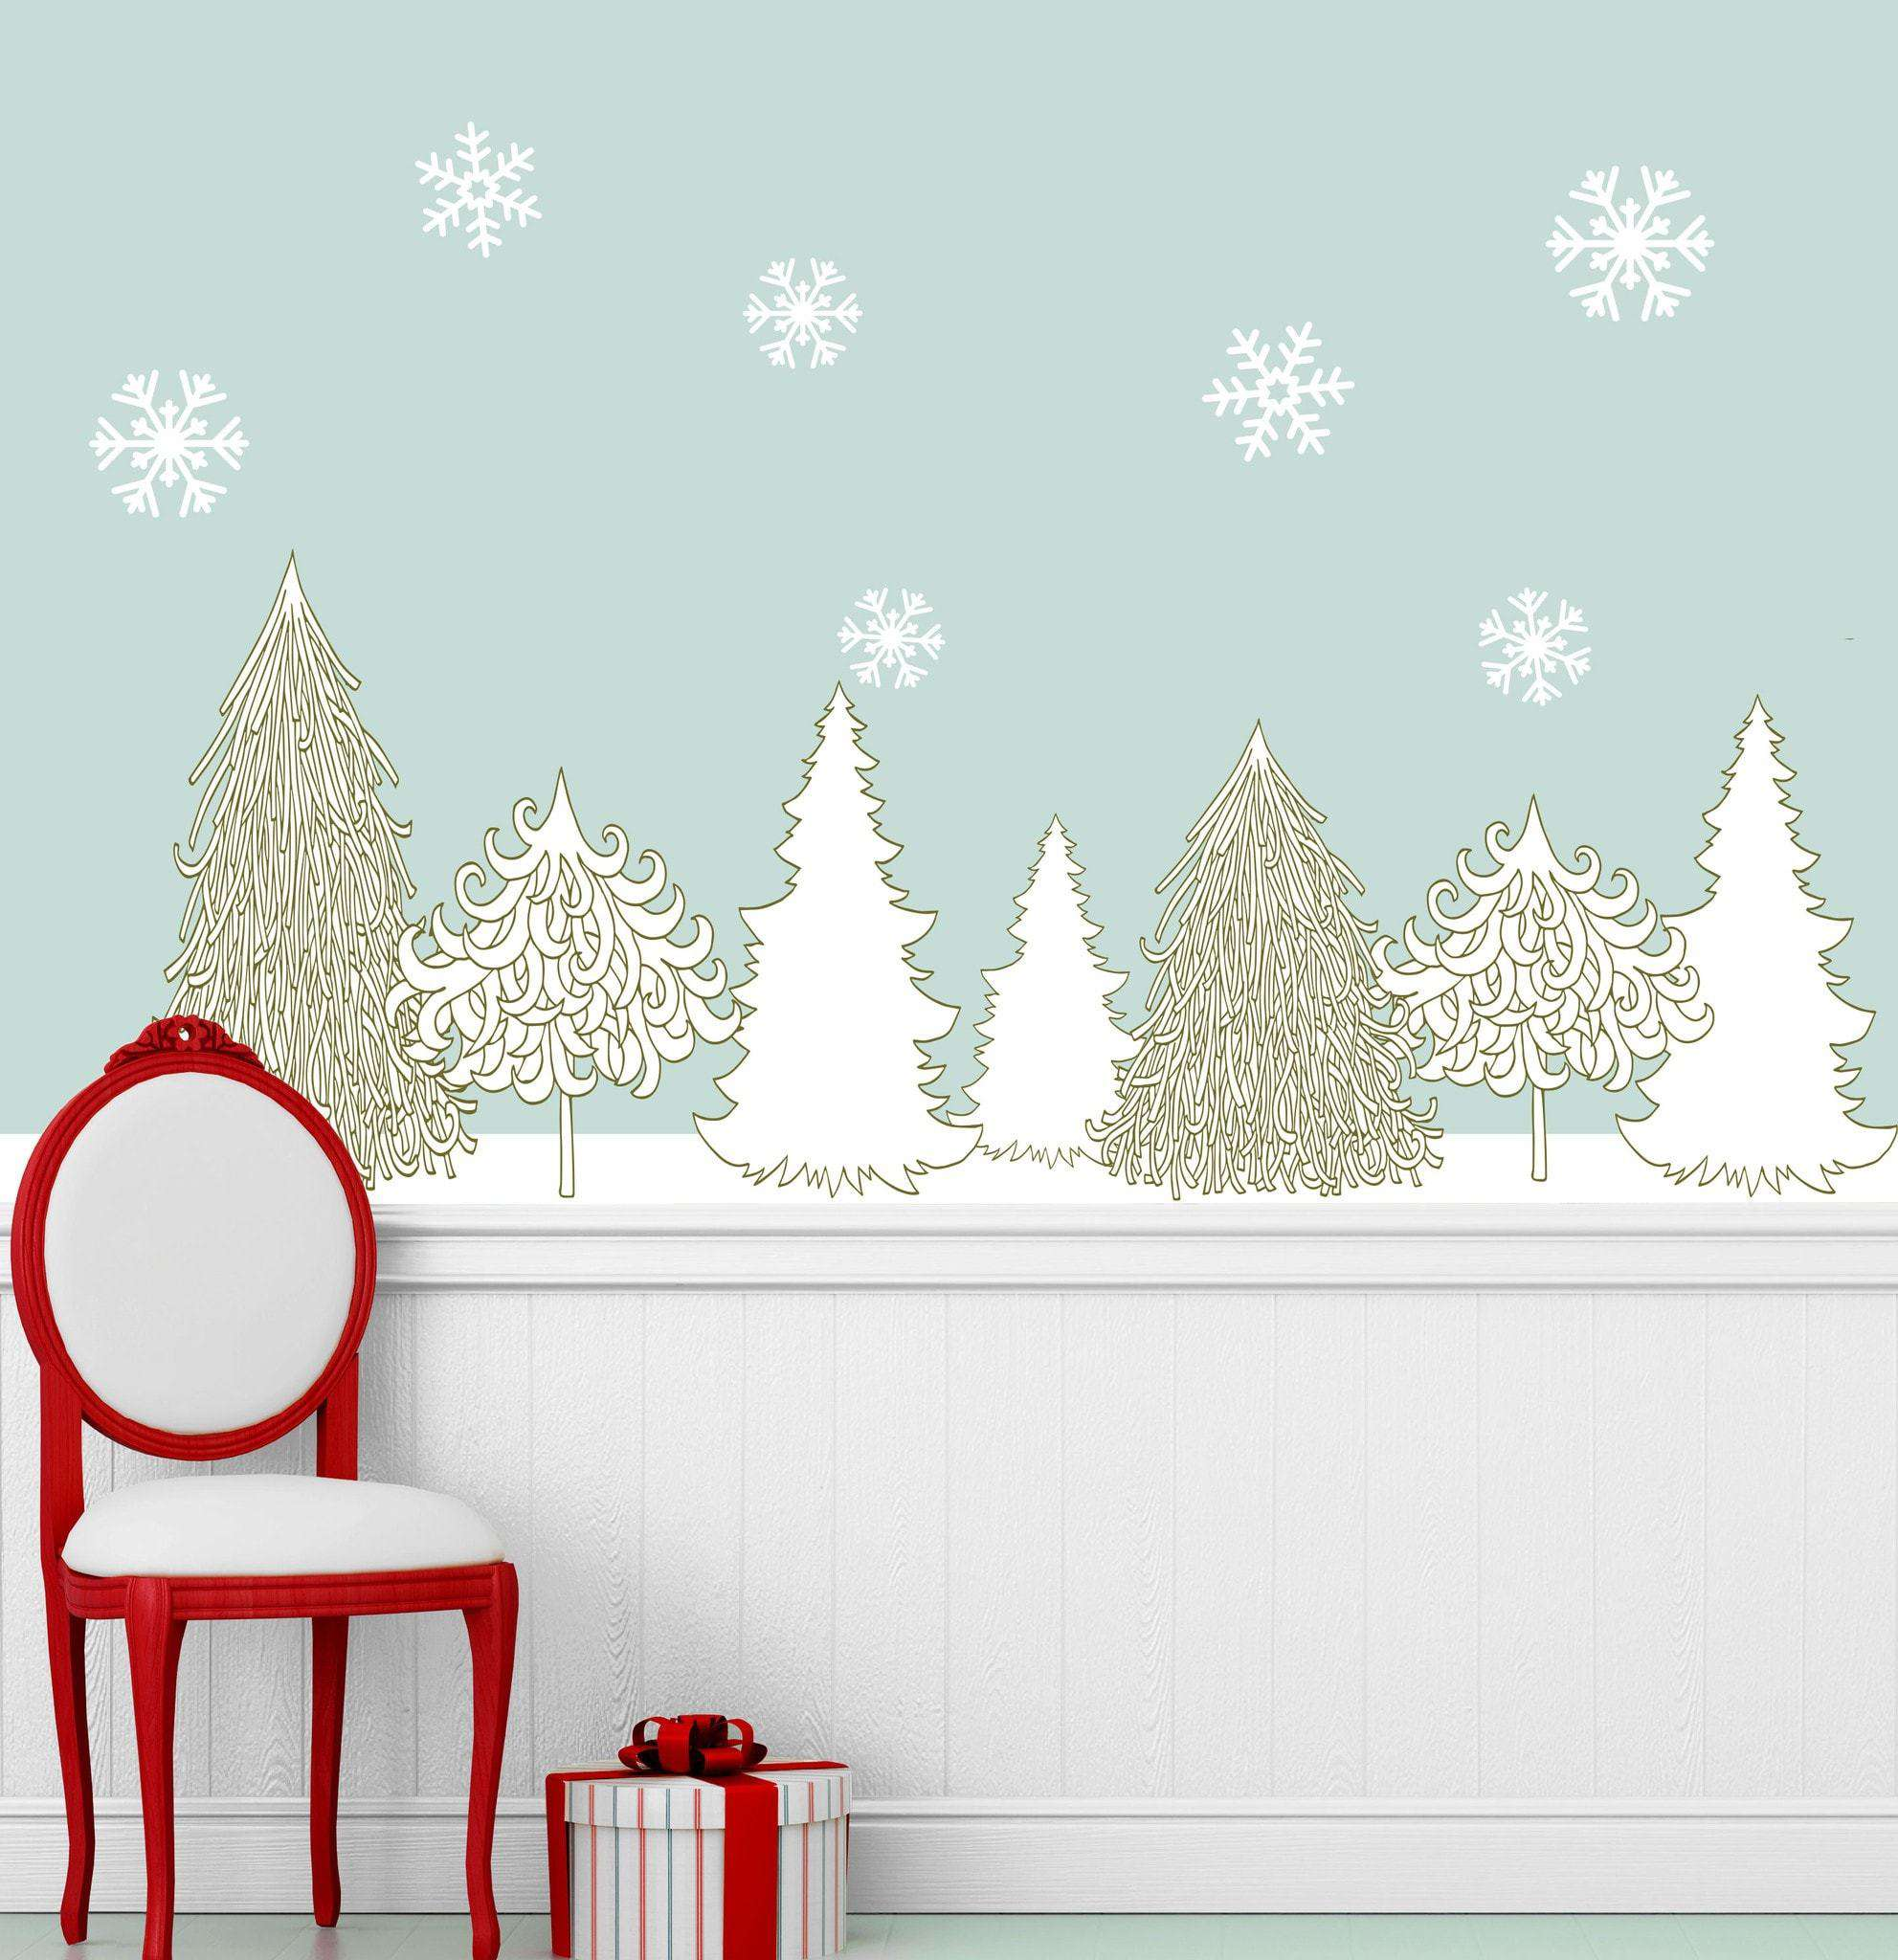 Winter Wonderland Decal Set Holiday Wall Decor Stickers Snowflakes